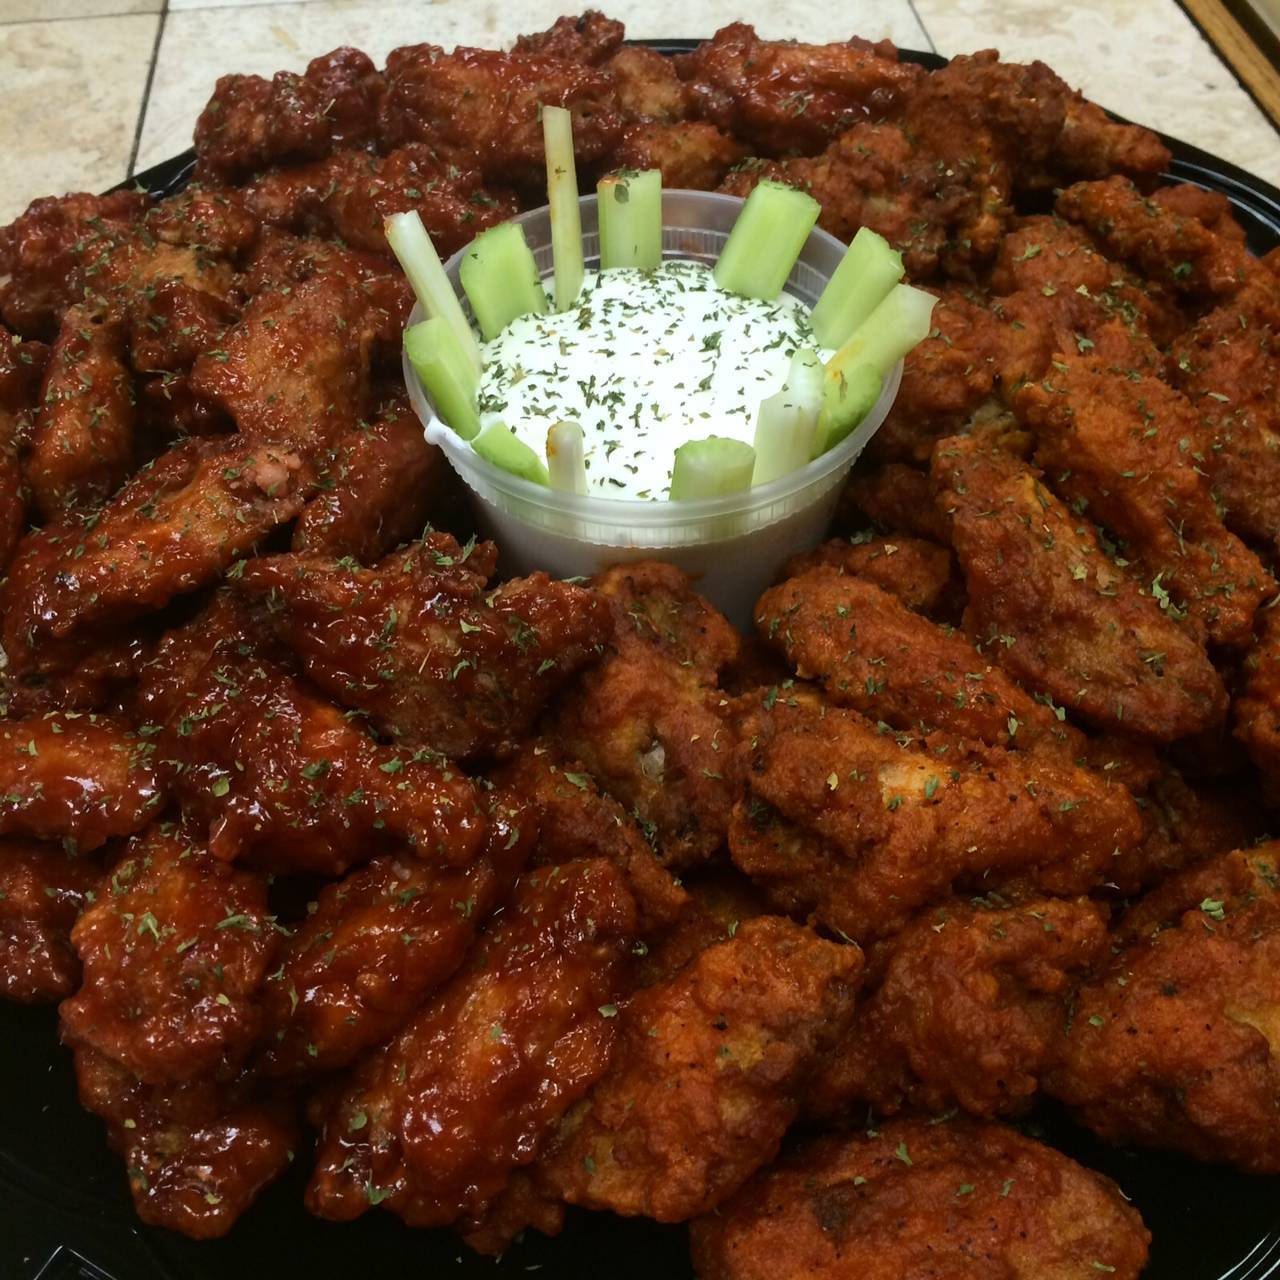 93b32cdd934a2942f71b_Nick_s_Pizza_wings.jpg